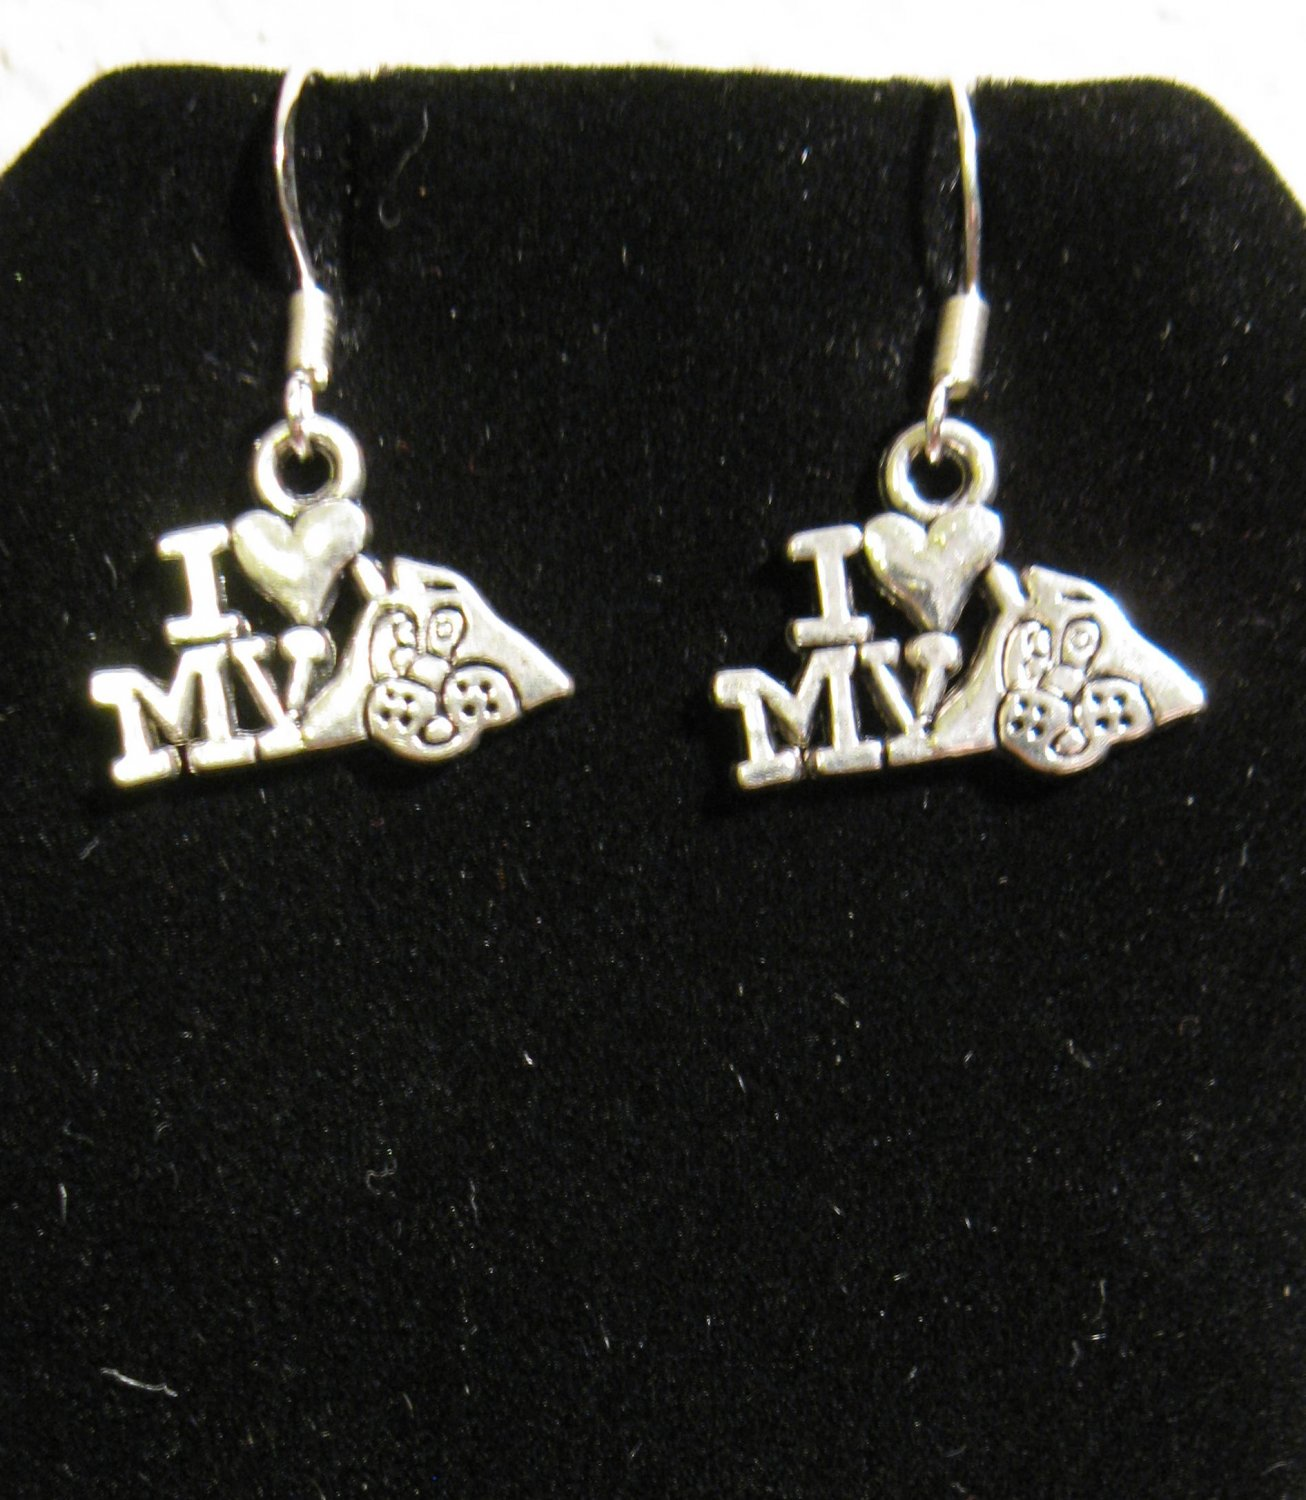 Adorable I Love My Dog Charm Earrings 1 in New! #D921